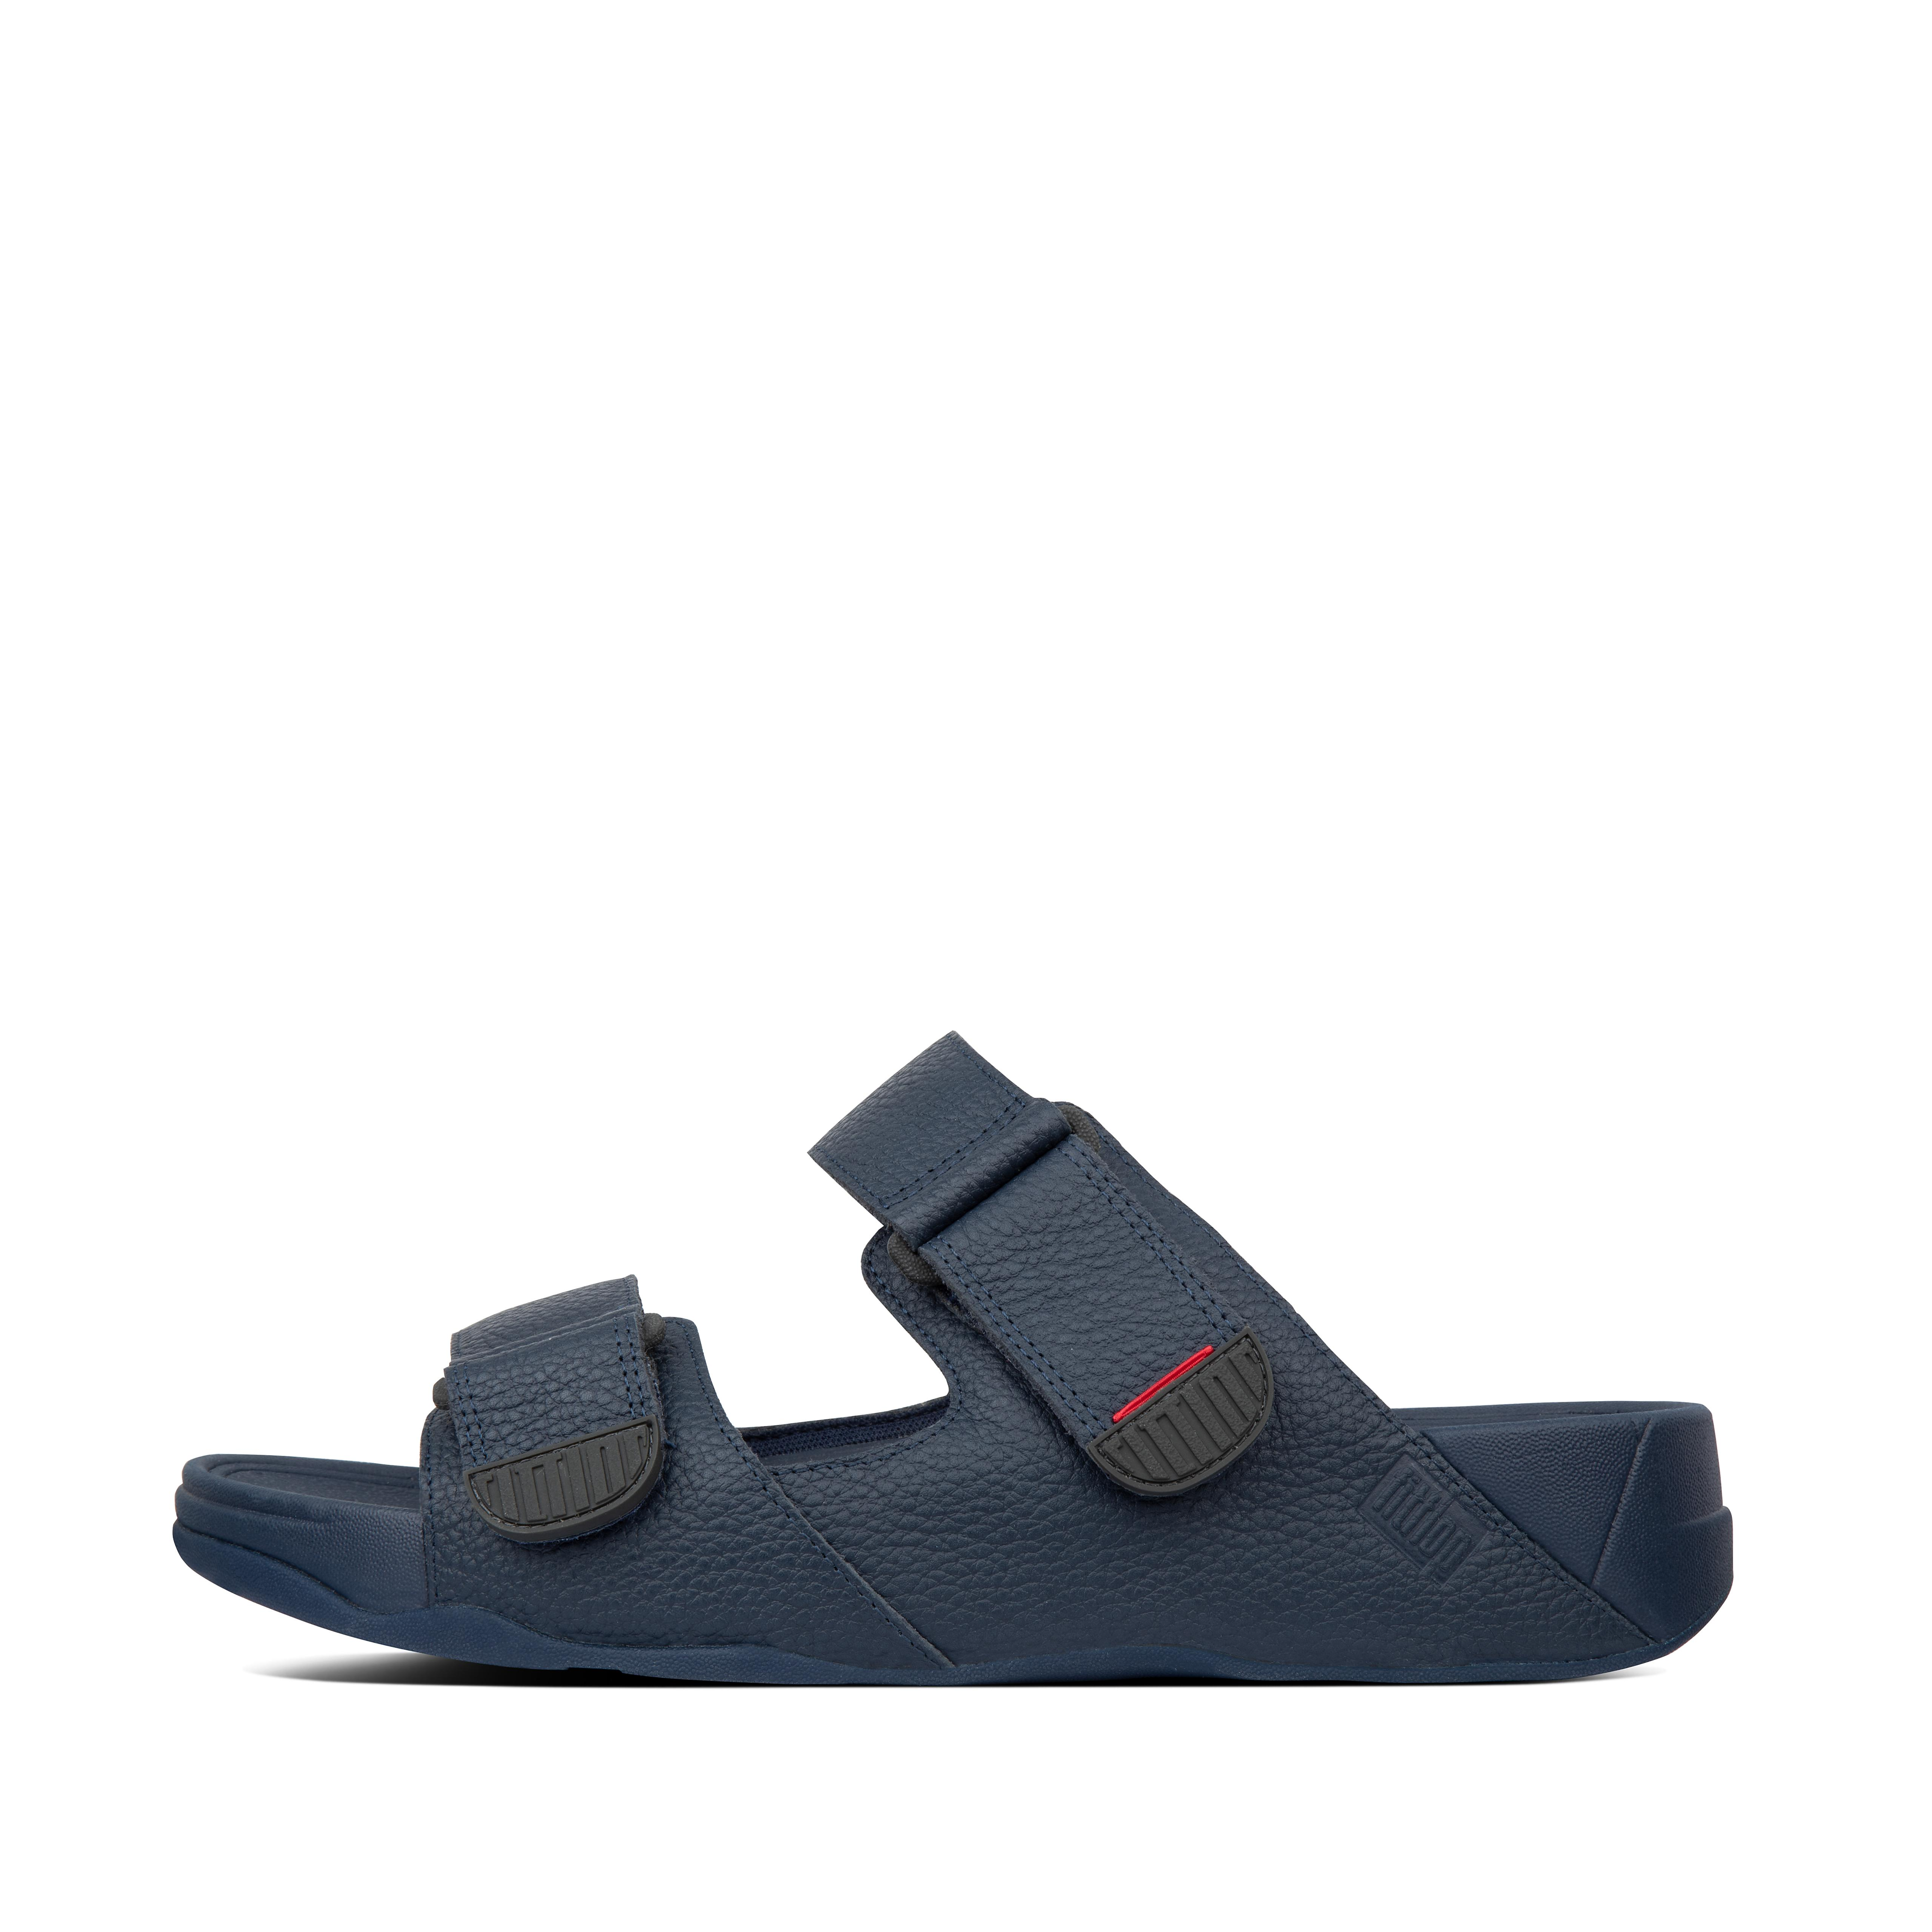 Looking for no-nonsense, casual sandals? These classic two-bar slides - here in a handsome tumbled leather - tick every (shoe) box. The ultimate in easy, with our ergonomic, instant pressure-diffusing Microwobbleboard™ midsoles and adjustable, softly padded straps.